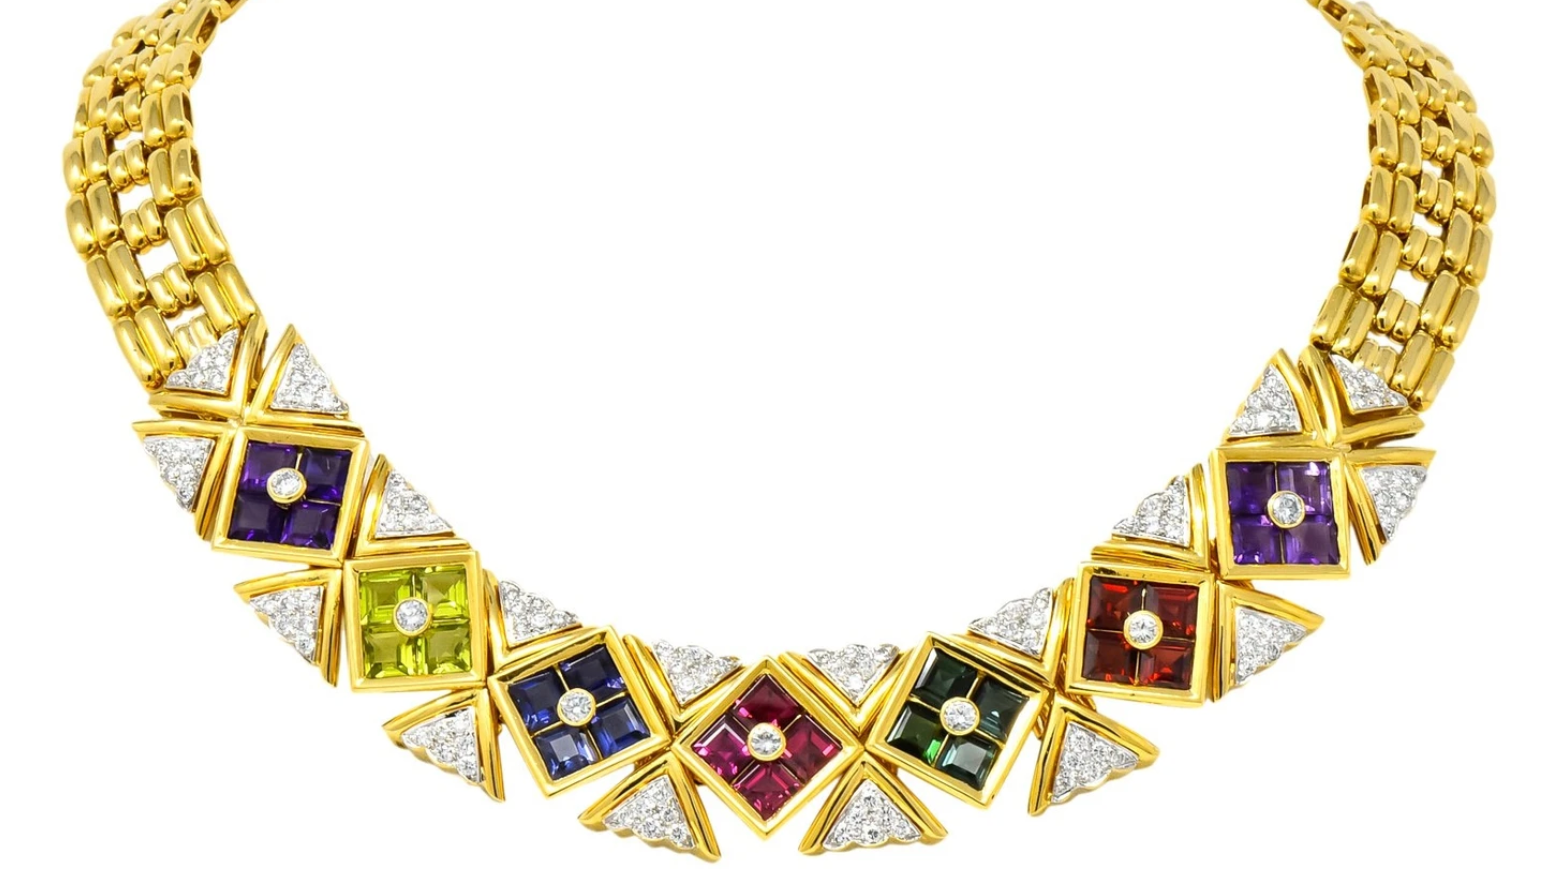 Tiffany & Co. Paloma Picasso 18 Karat Gold Harlequin Gemstone Collar Necklace